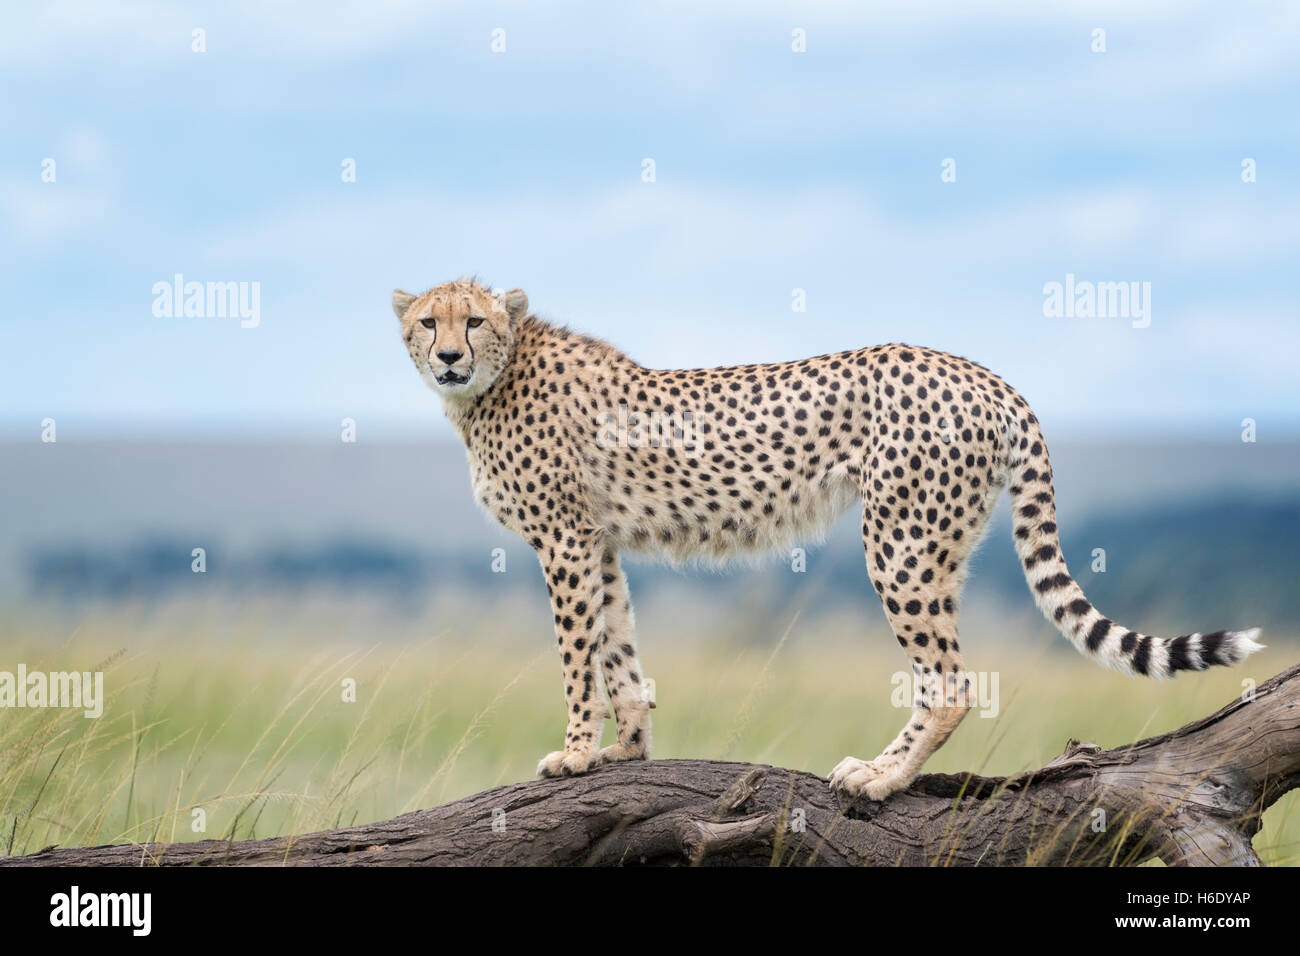 Cheetah (Acinonix jubatus) standing on fallen tree, Maasai Mara National Reserve, Kenya - Stock Image